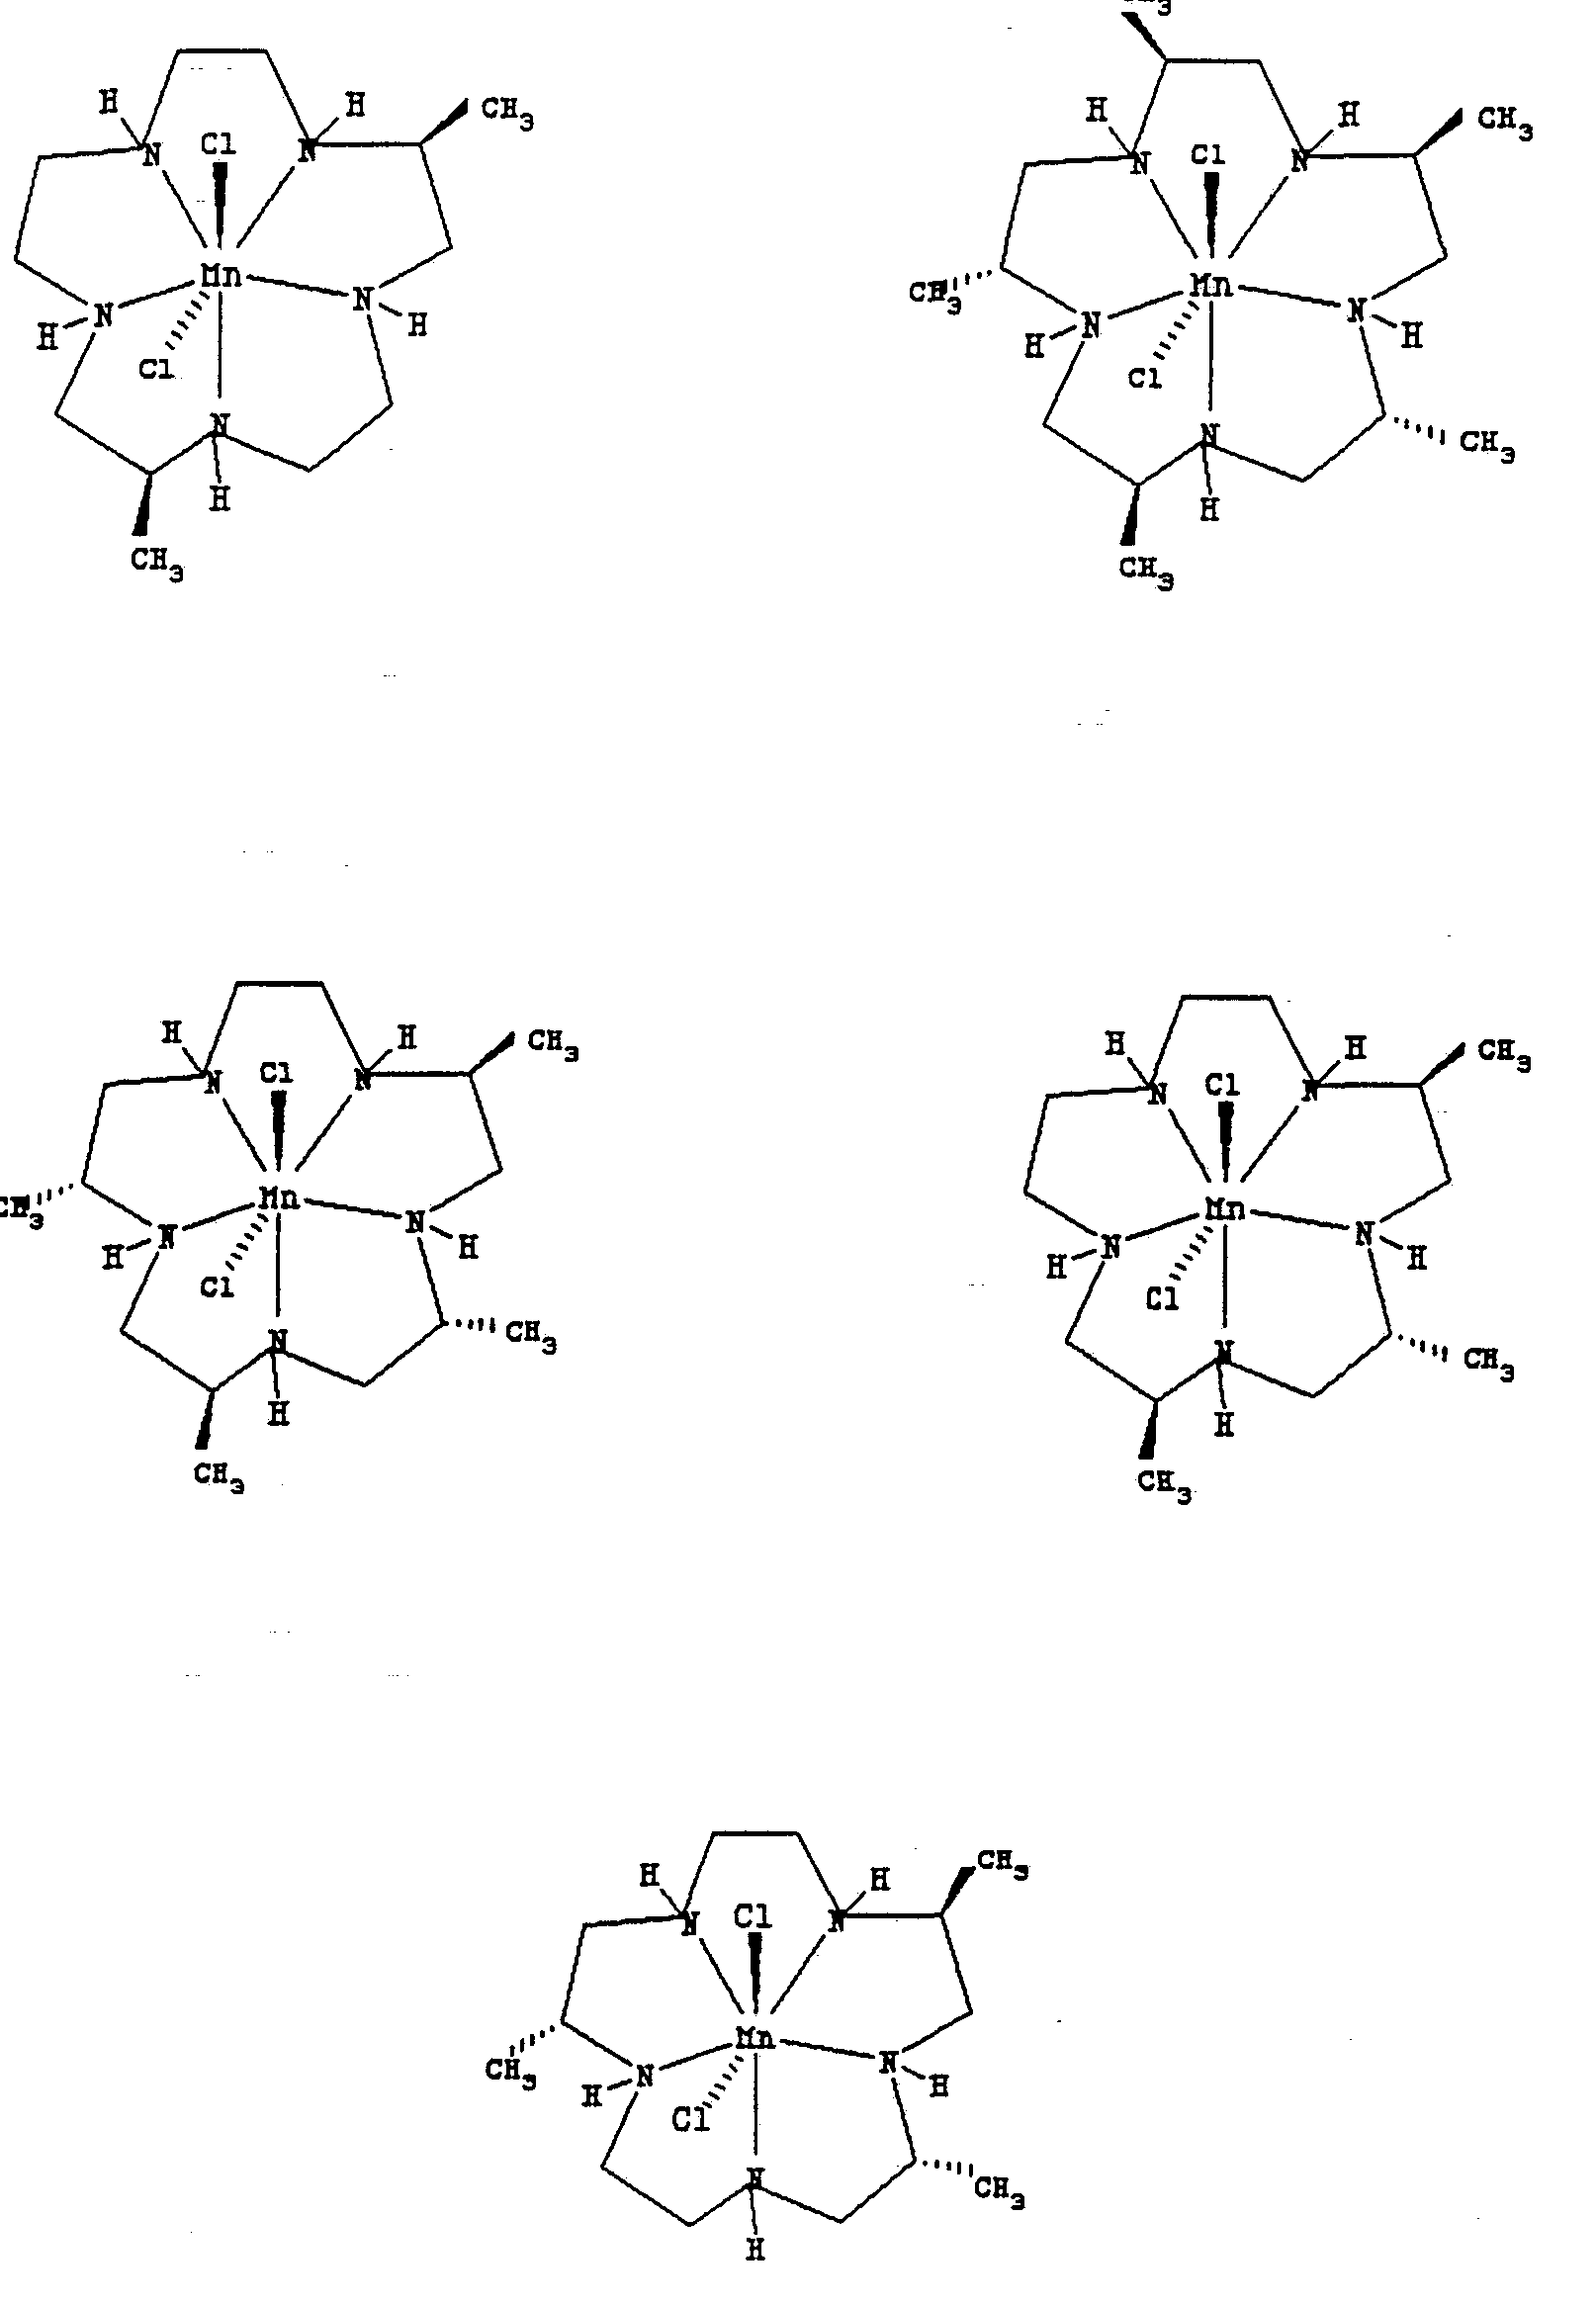 manganese iii complex Control of the axial coordination of a surface-confined manganese(iii) porphyrin complex manganese(iii) boucher l j 1972 manganese porphyrin complexes coord.